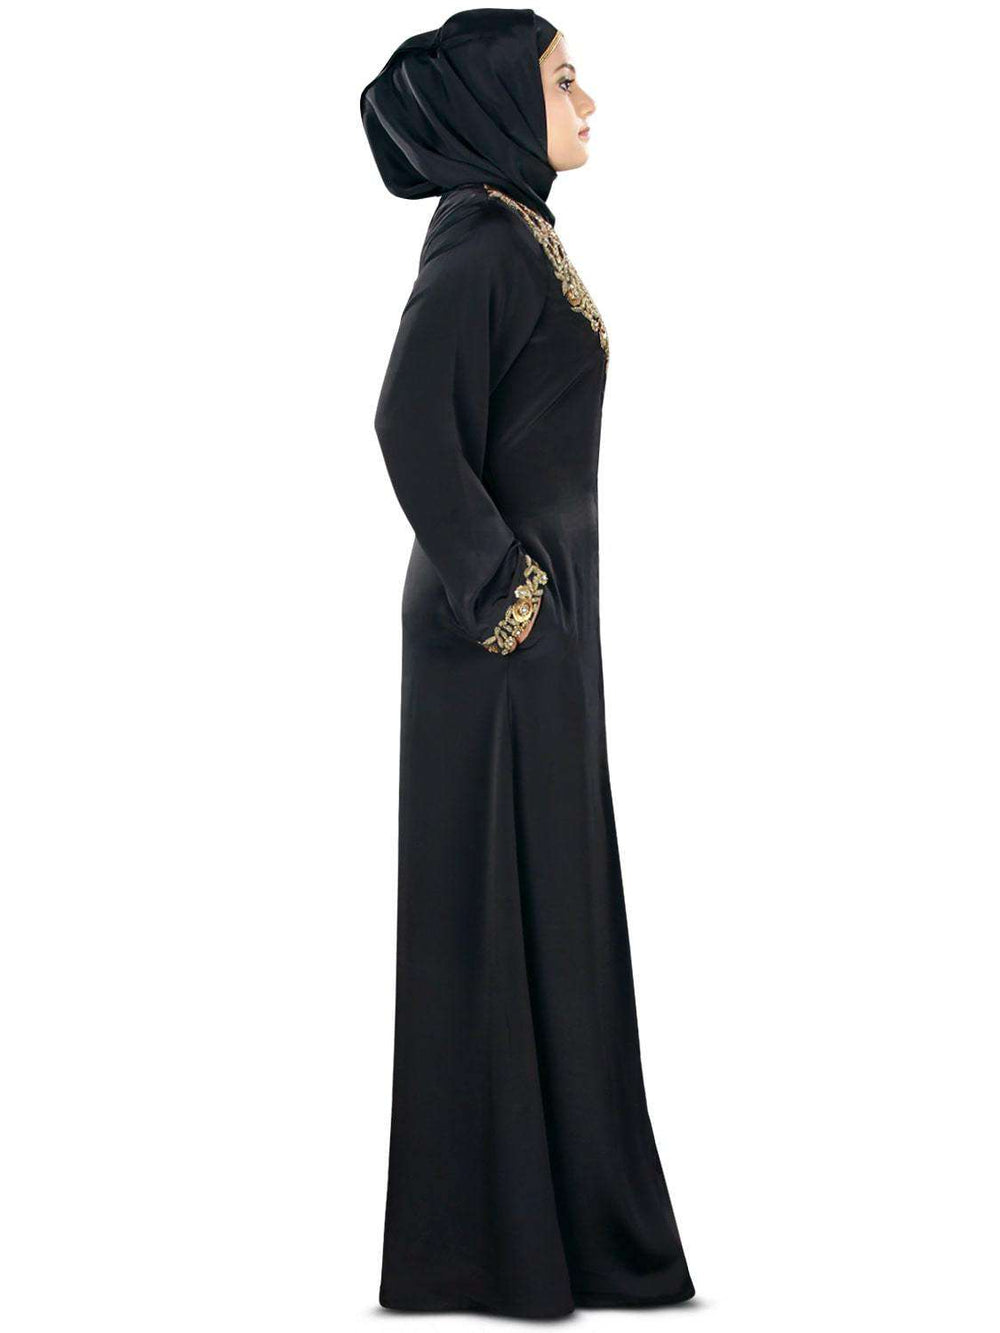 Fiddah Gold Hand Embroidered Burqa